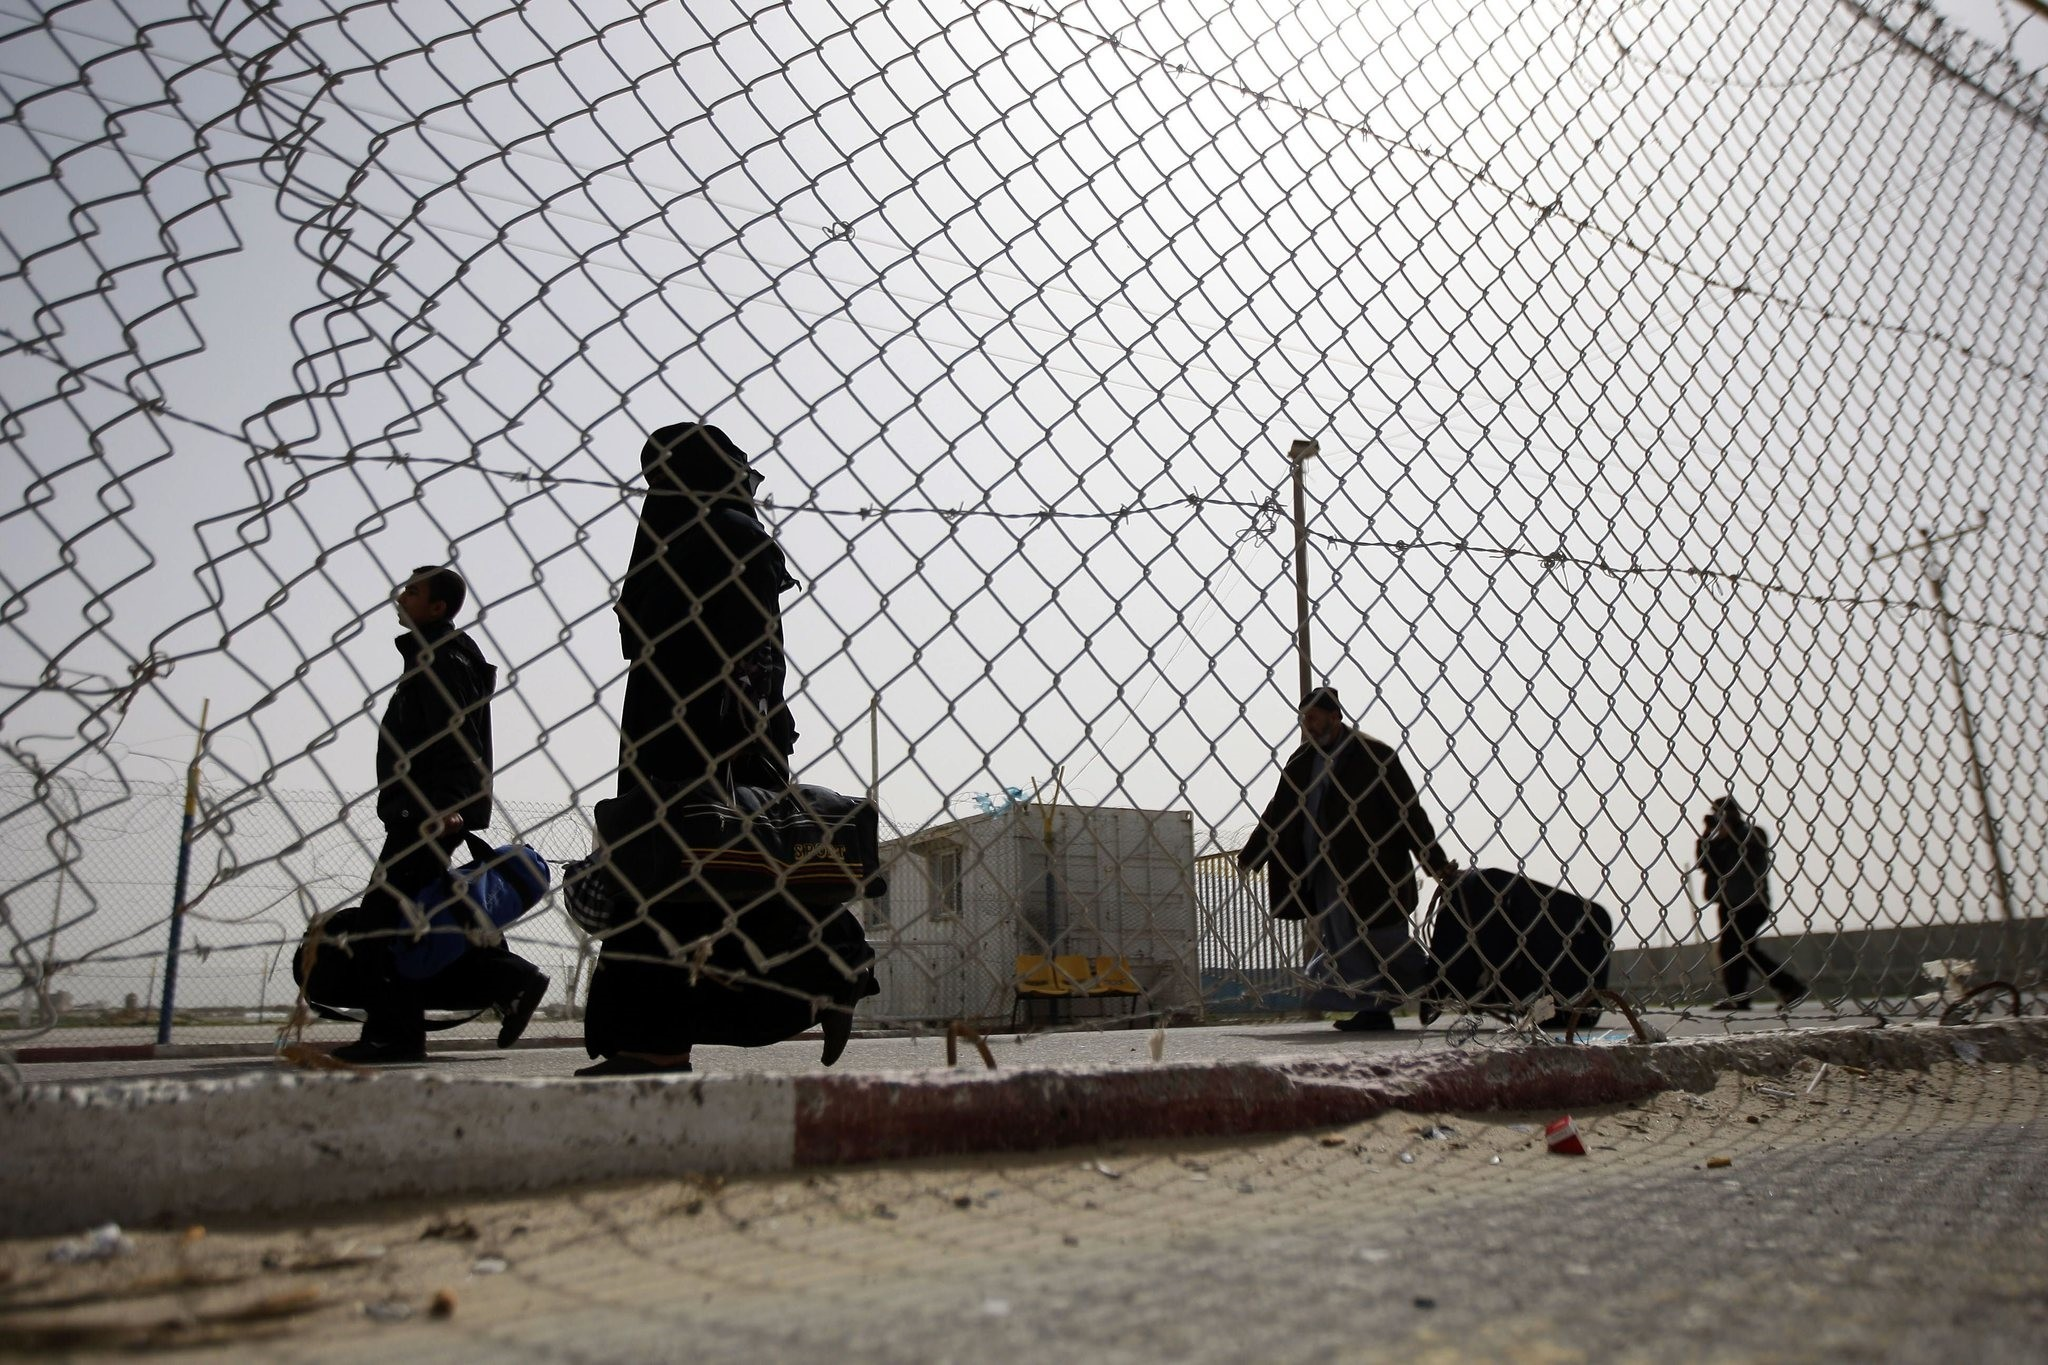 Palestinians arriving to the Gaza Strip from the Rafah border terminal between Egypt and the coastal strip, Feb. 19, 2011. (AFP Photo)u00a0